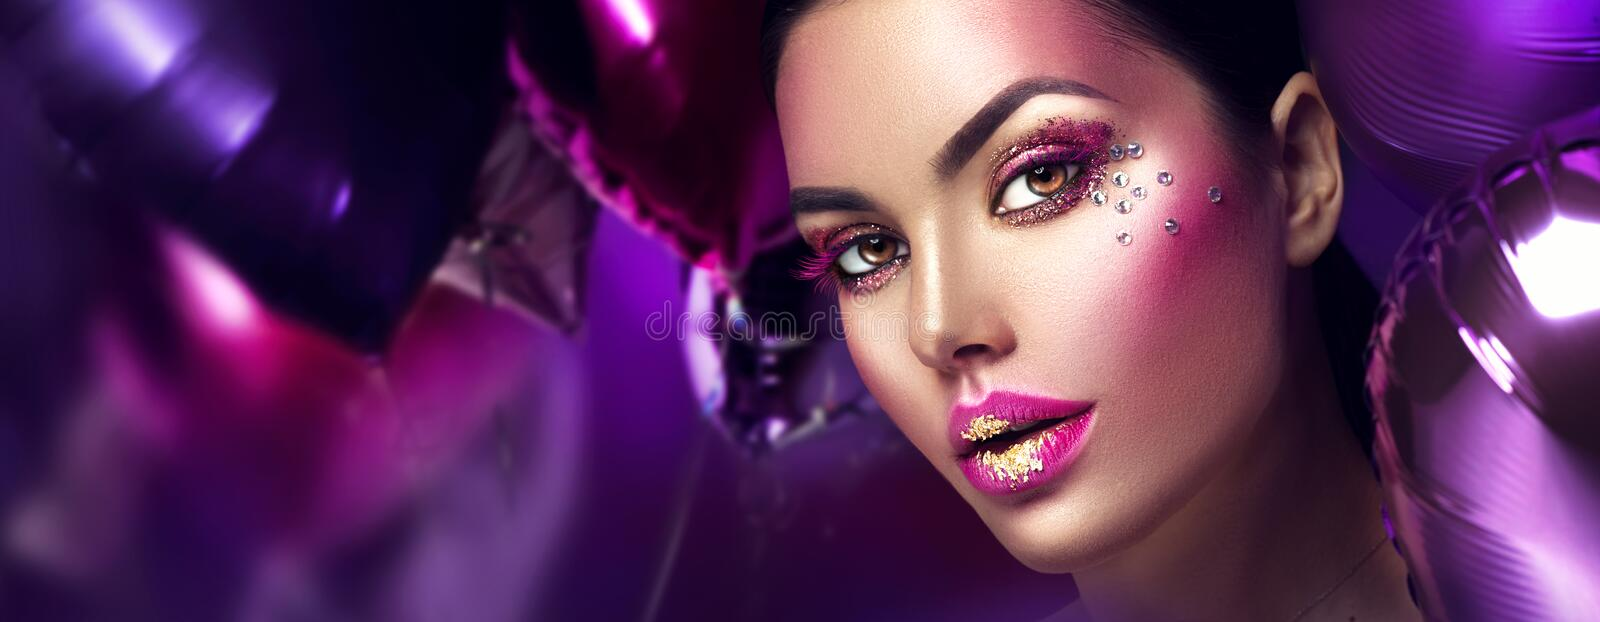 Beauty fashion model girl creative art makeup with gems. Woman face over purple, pink and violet air balloons stock photos